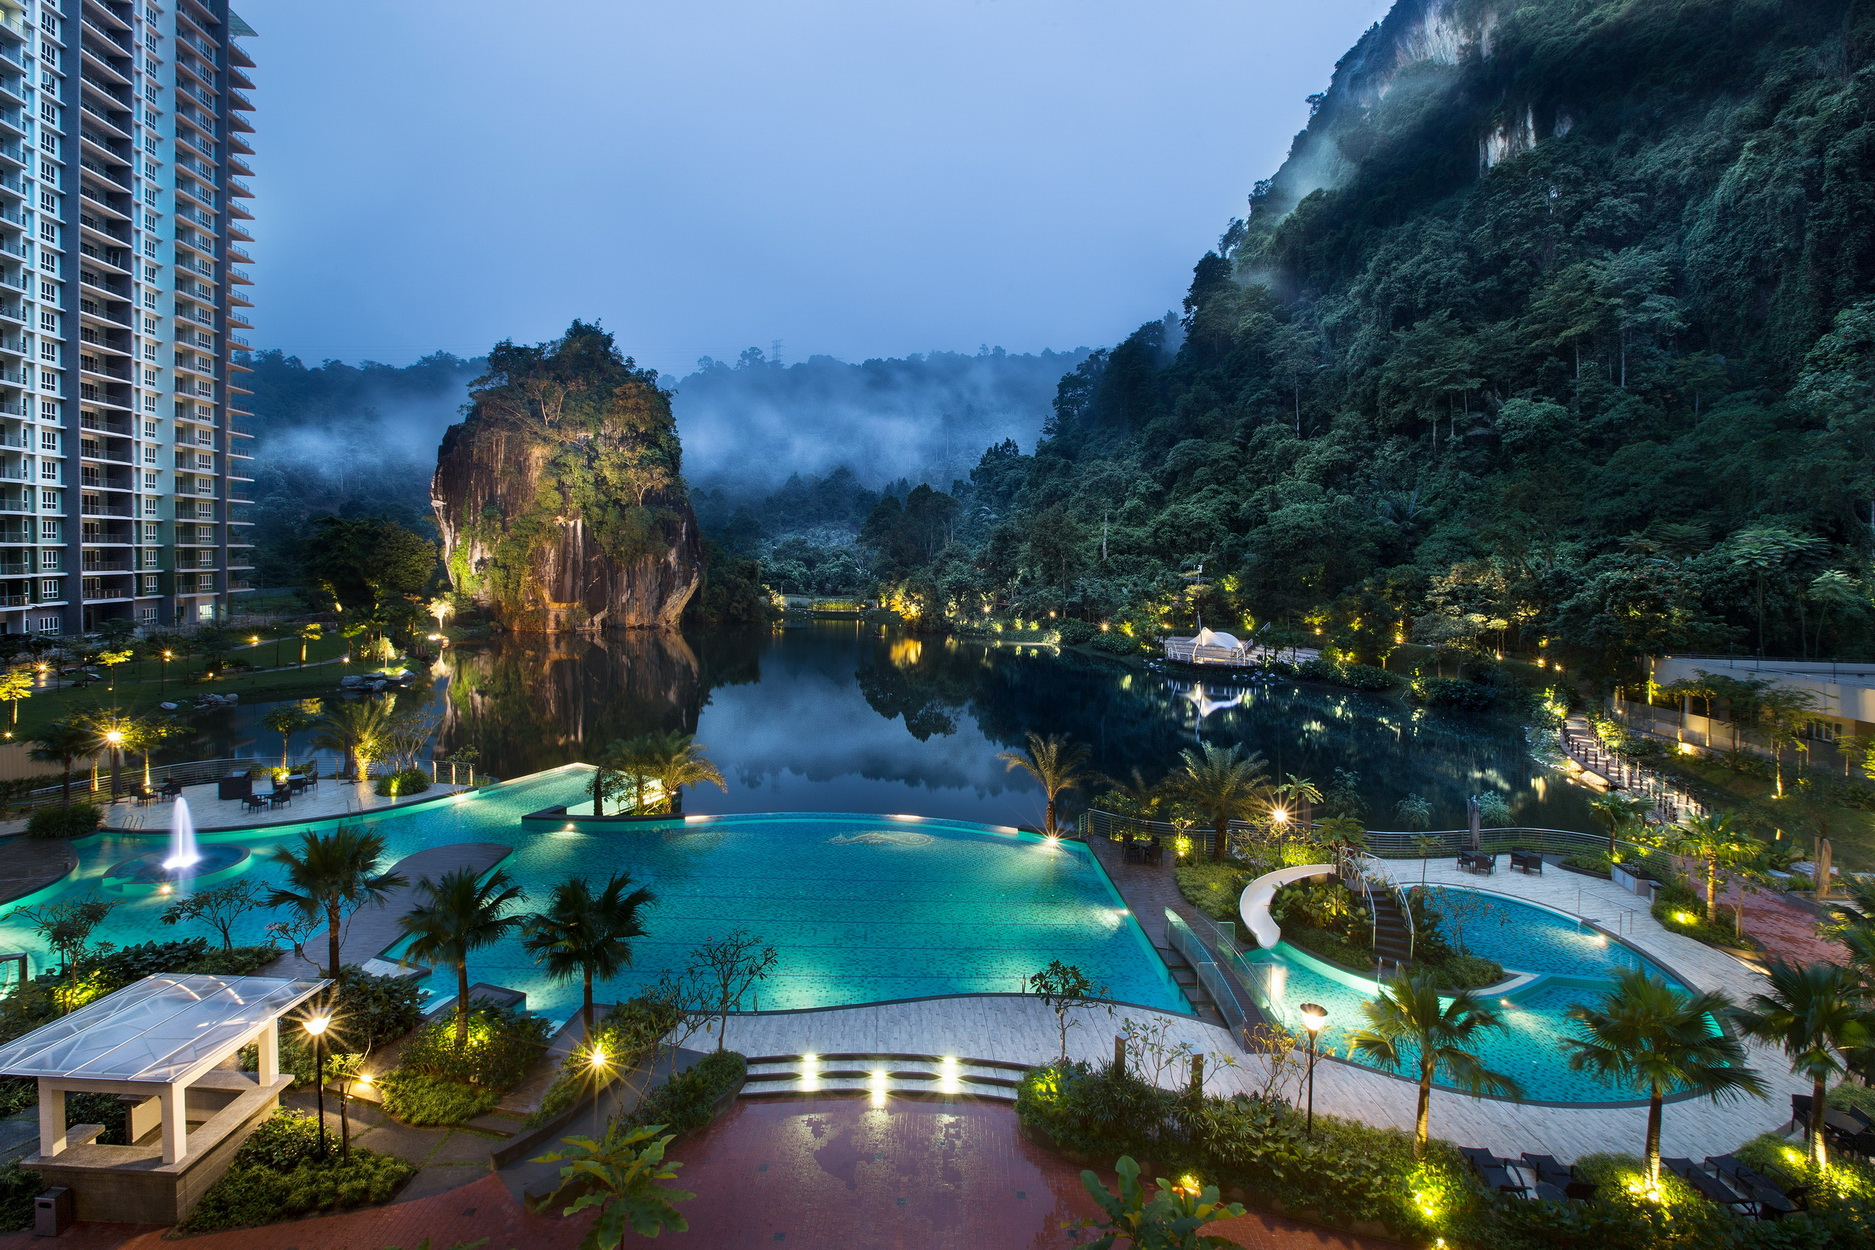 hotel in ipoh Travel the world better expedia price guarantee on 121 ipoh hotels saves you money real user reviews on over 321,000 hotels worldwide no expedia cancellation fee.